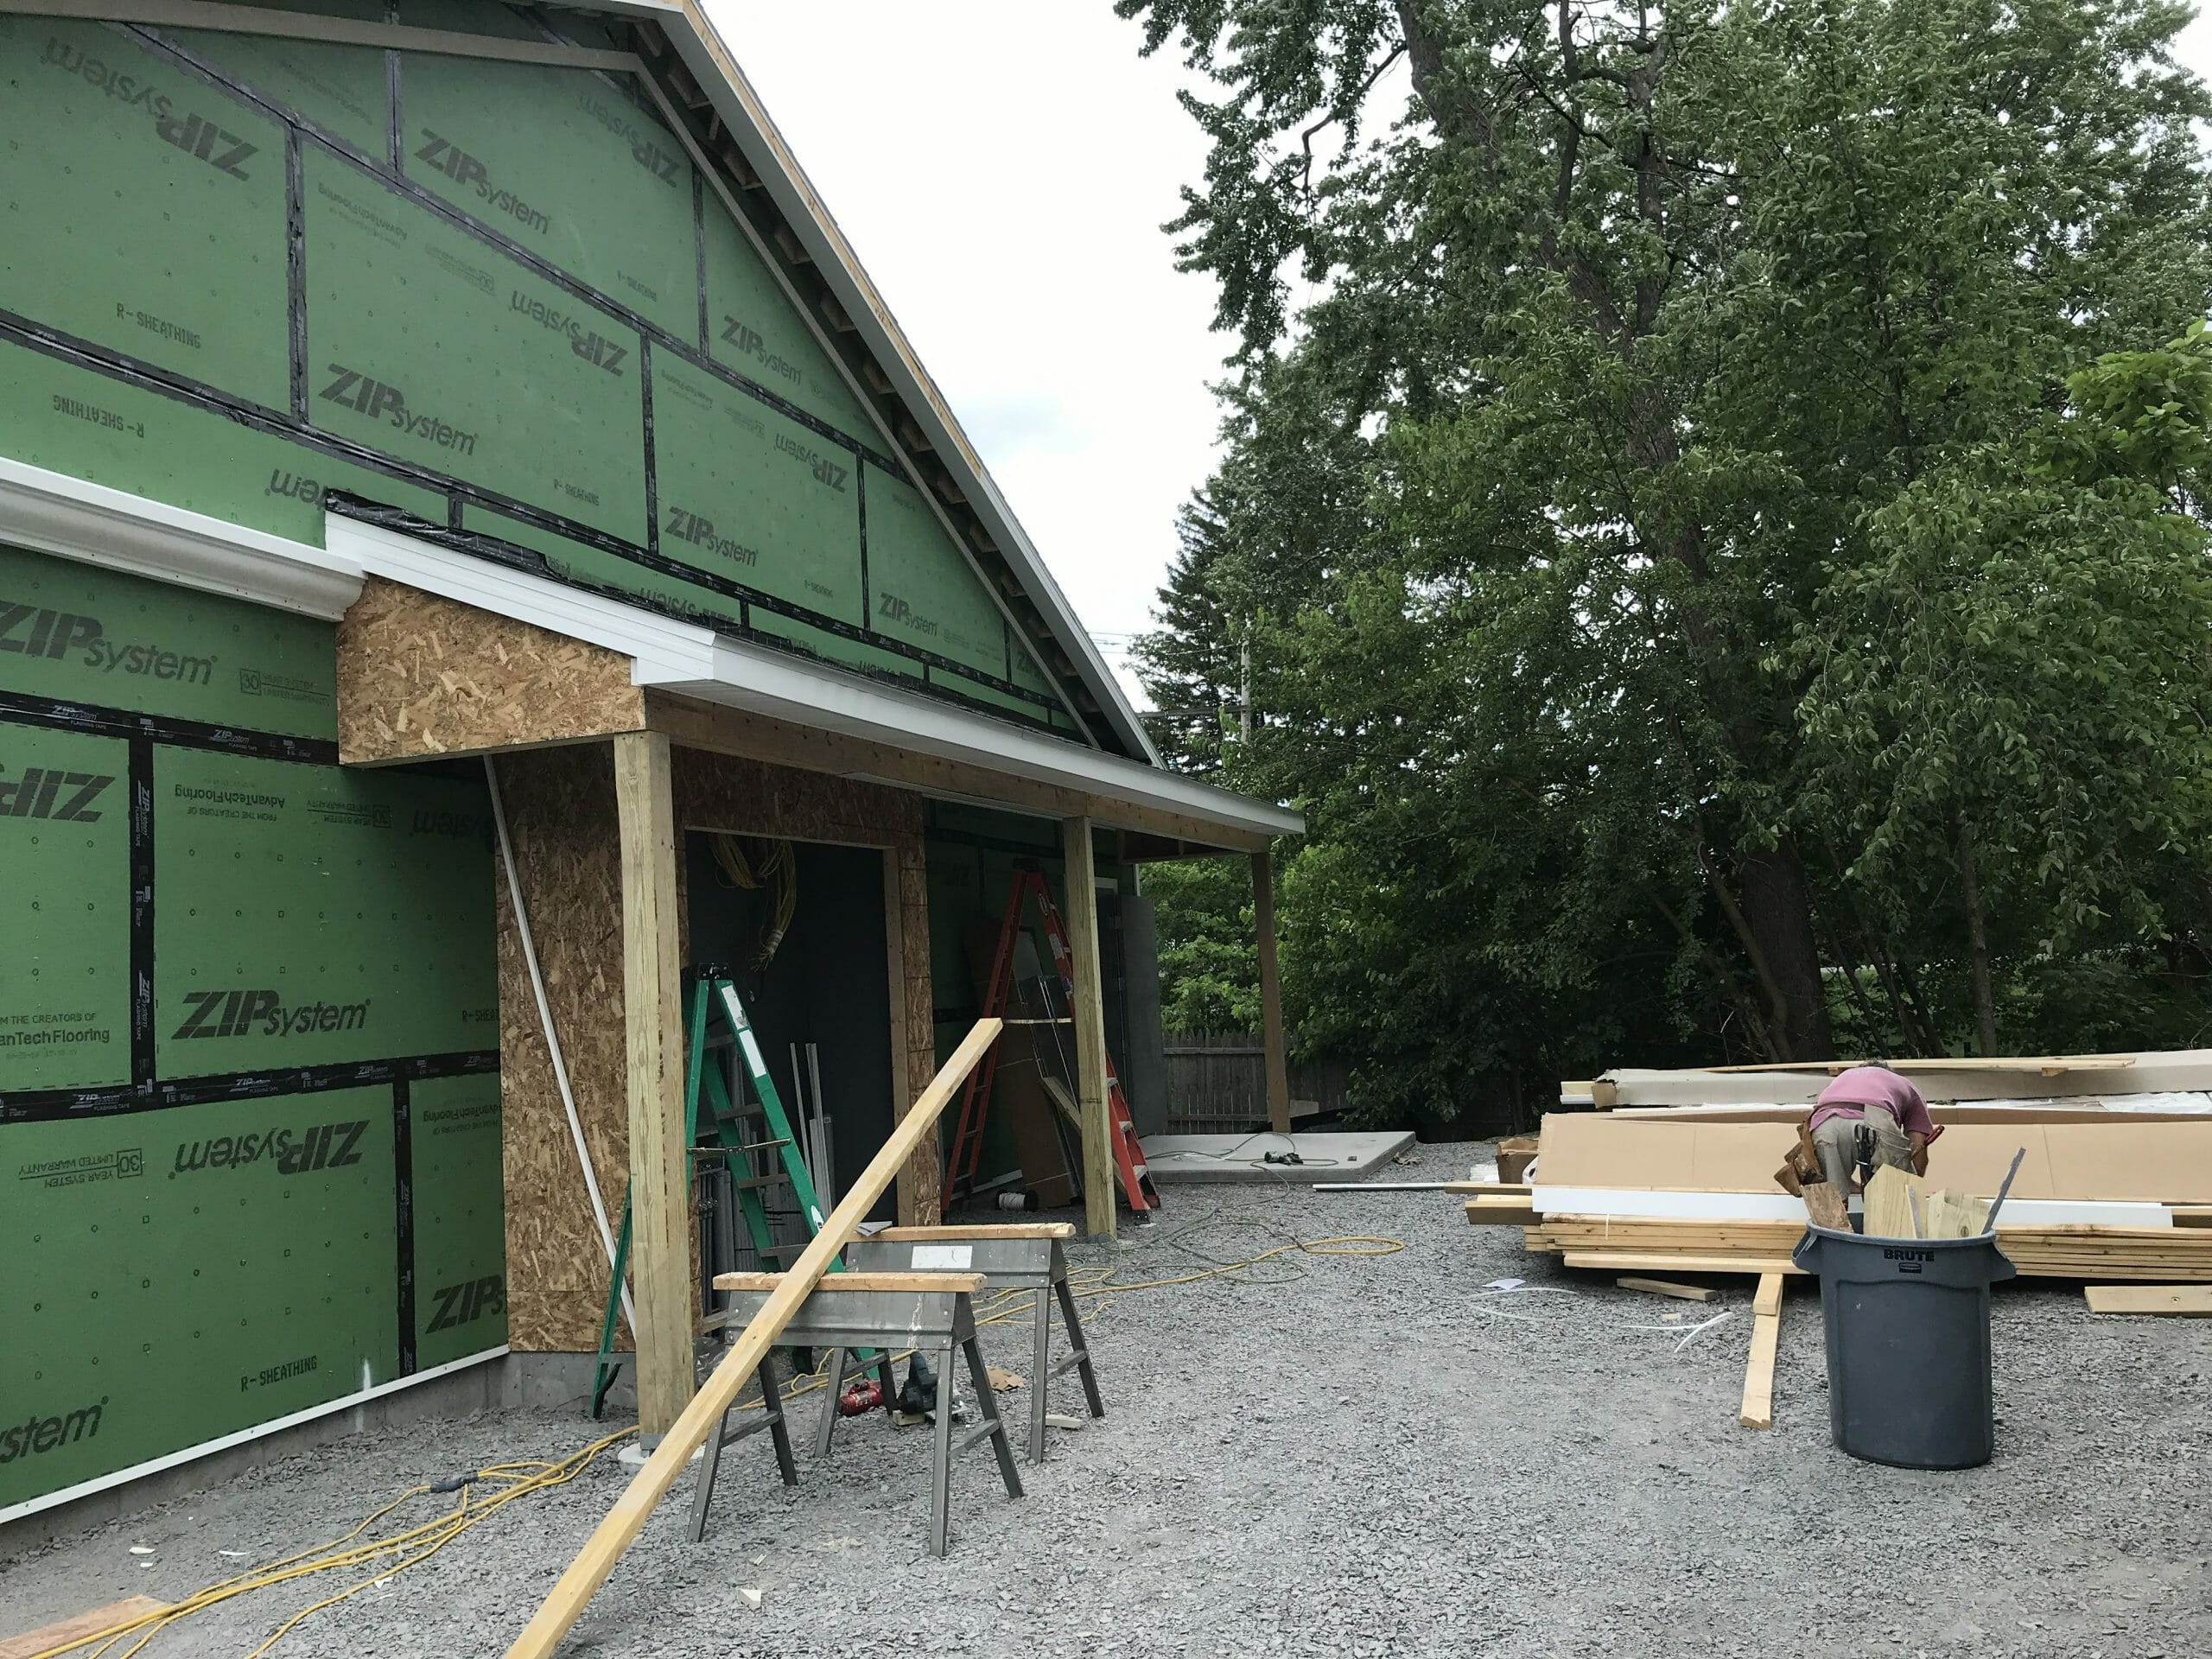 Stewarts Shop being constructed